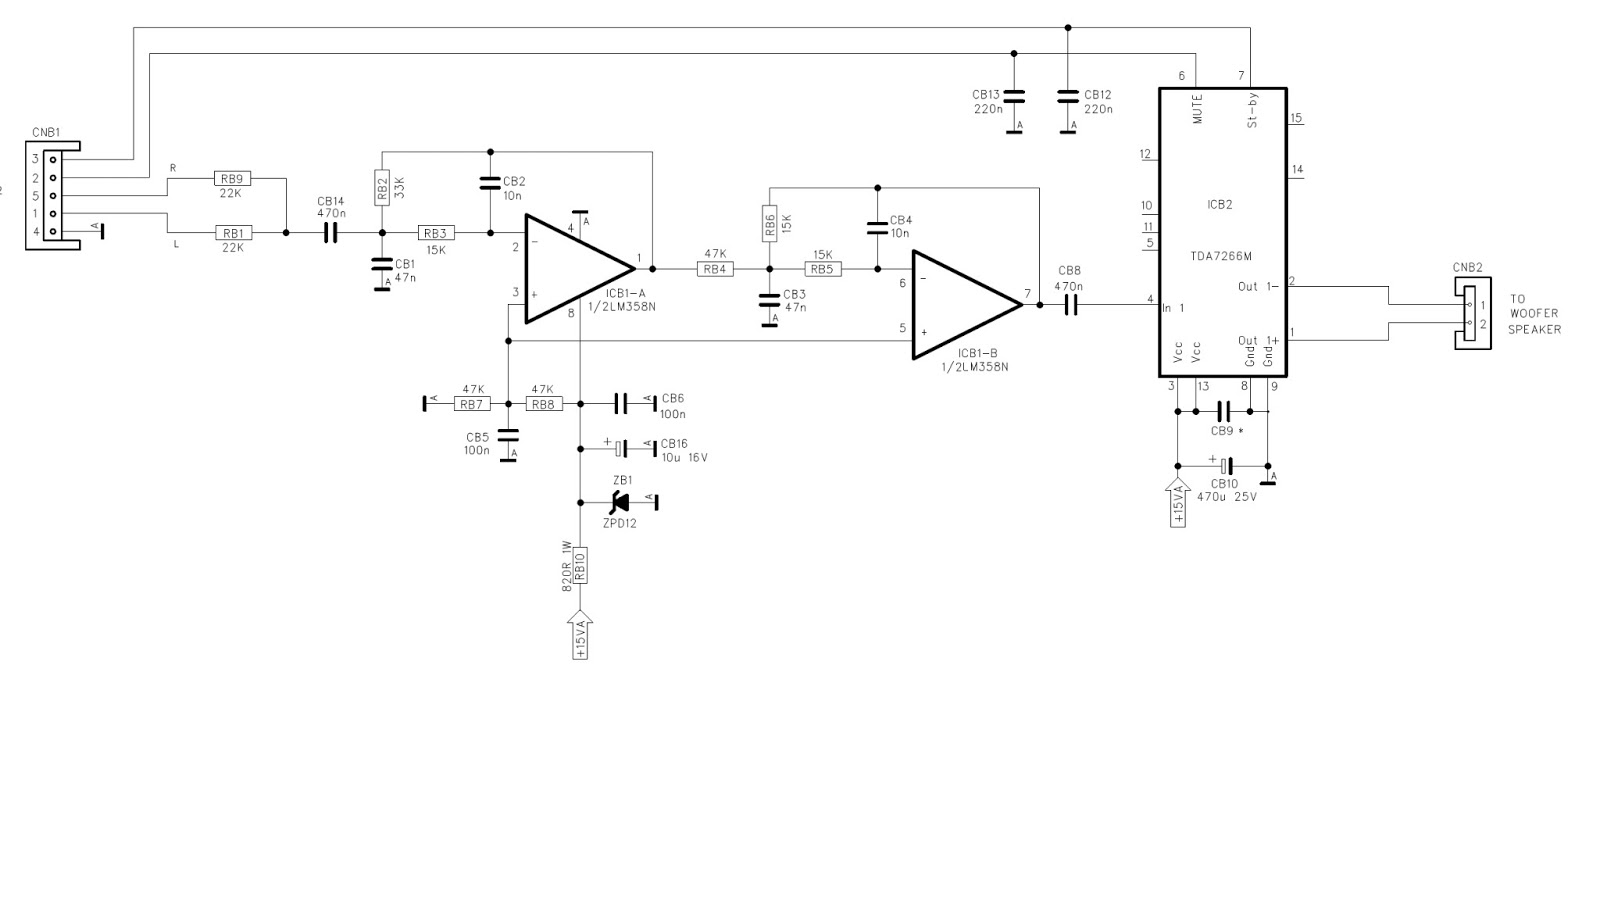 hight resolution of lm358n amplifier circuit woofer amplifier circuit diagram sub woofer circuit woofer circuit diagram electro magnet diagram